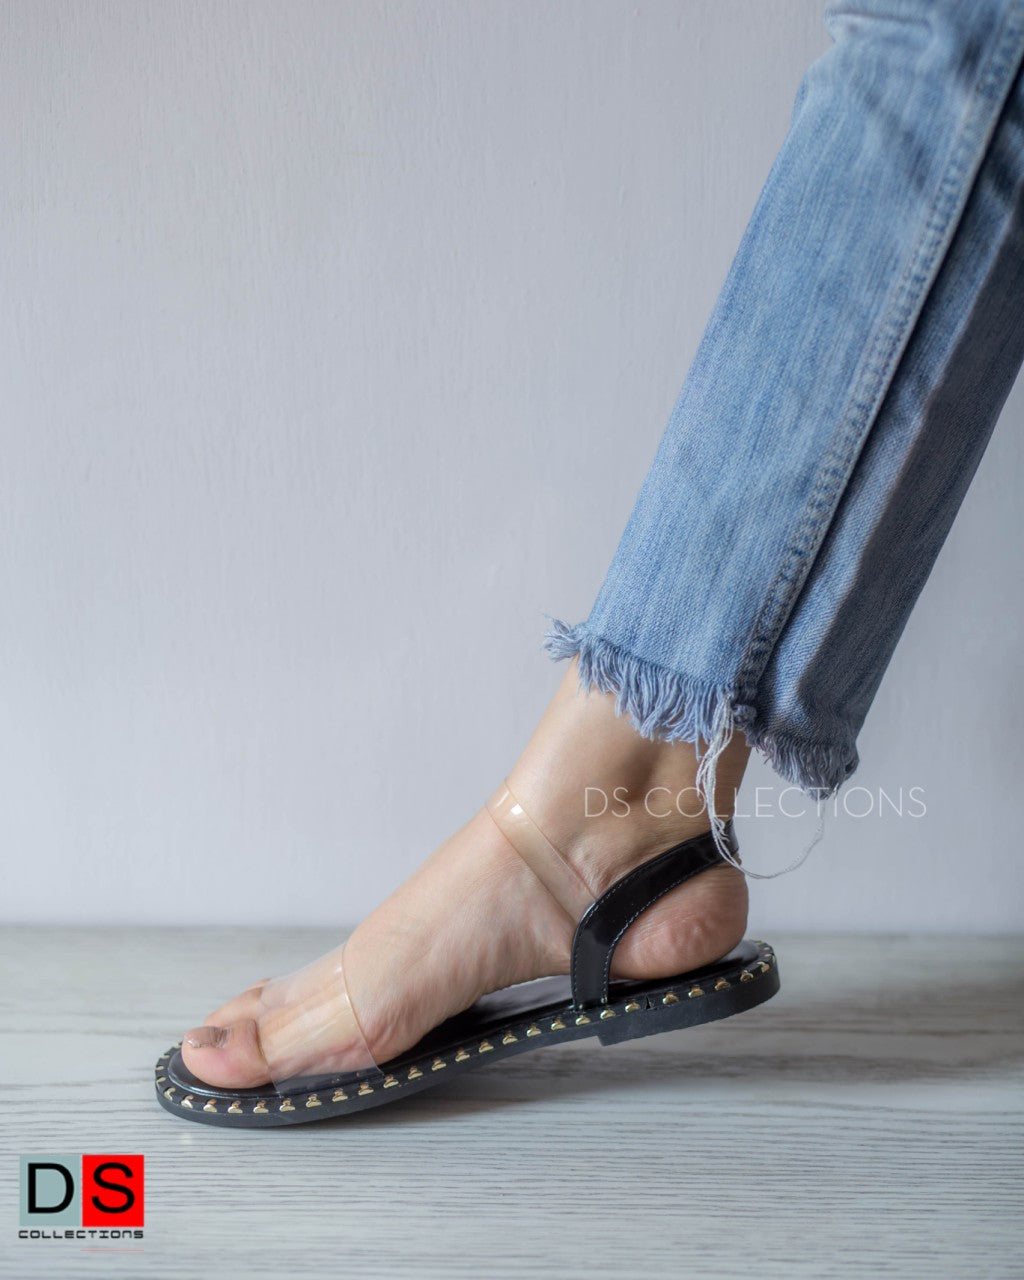 Translucent Strap Slipper